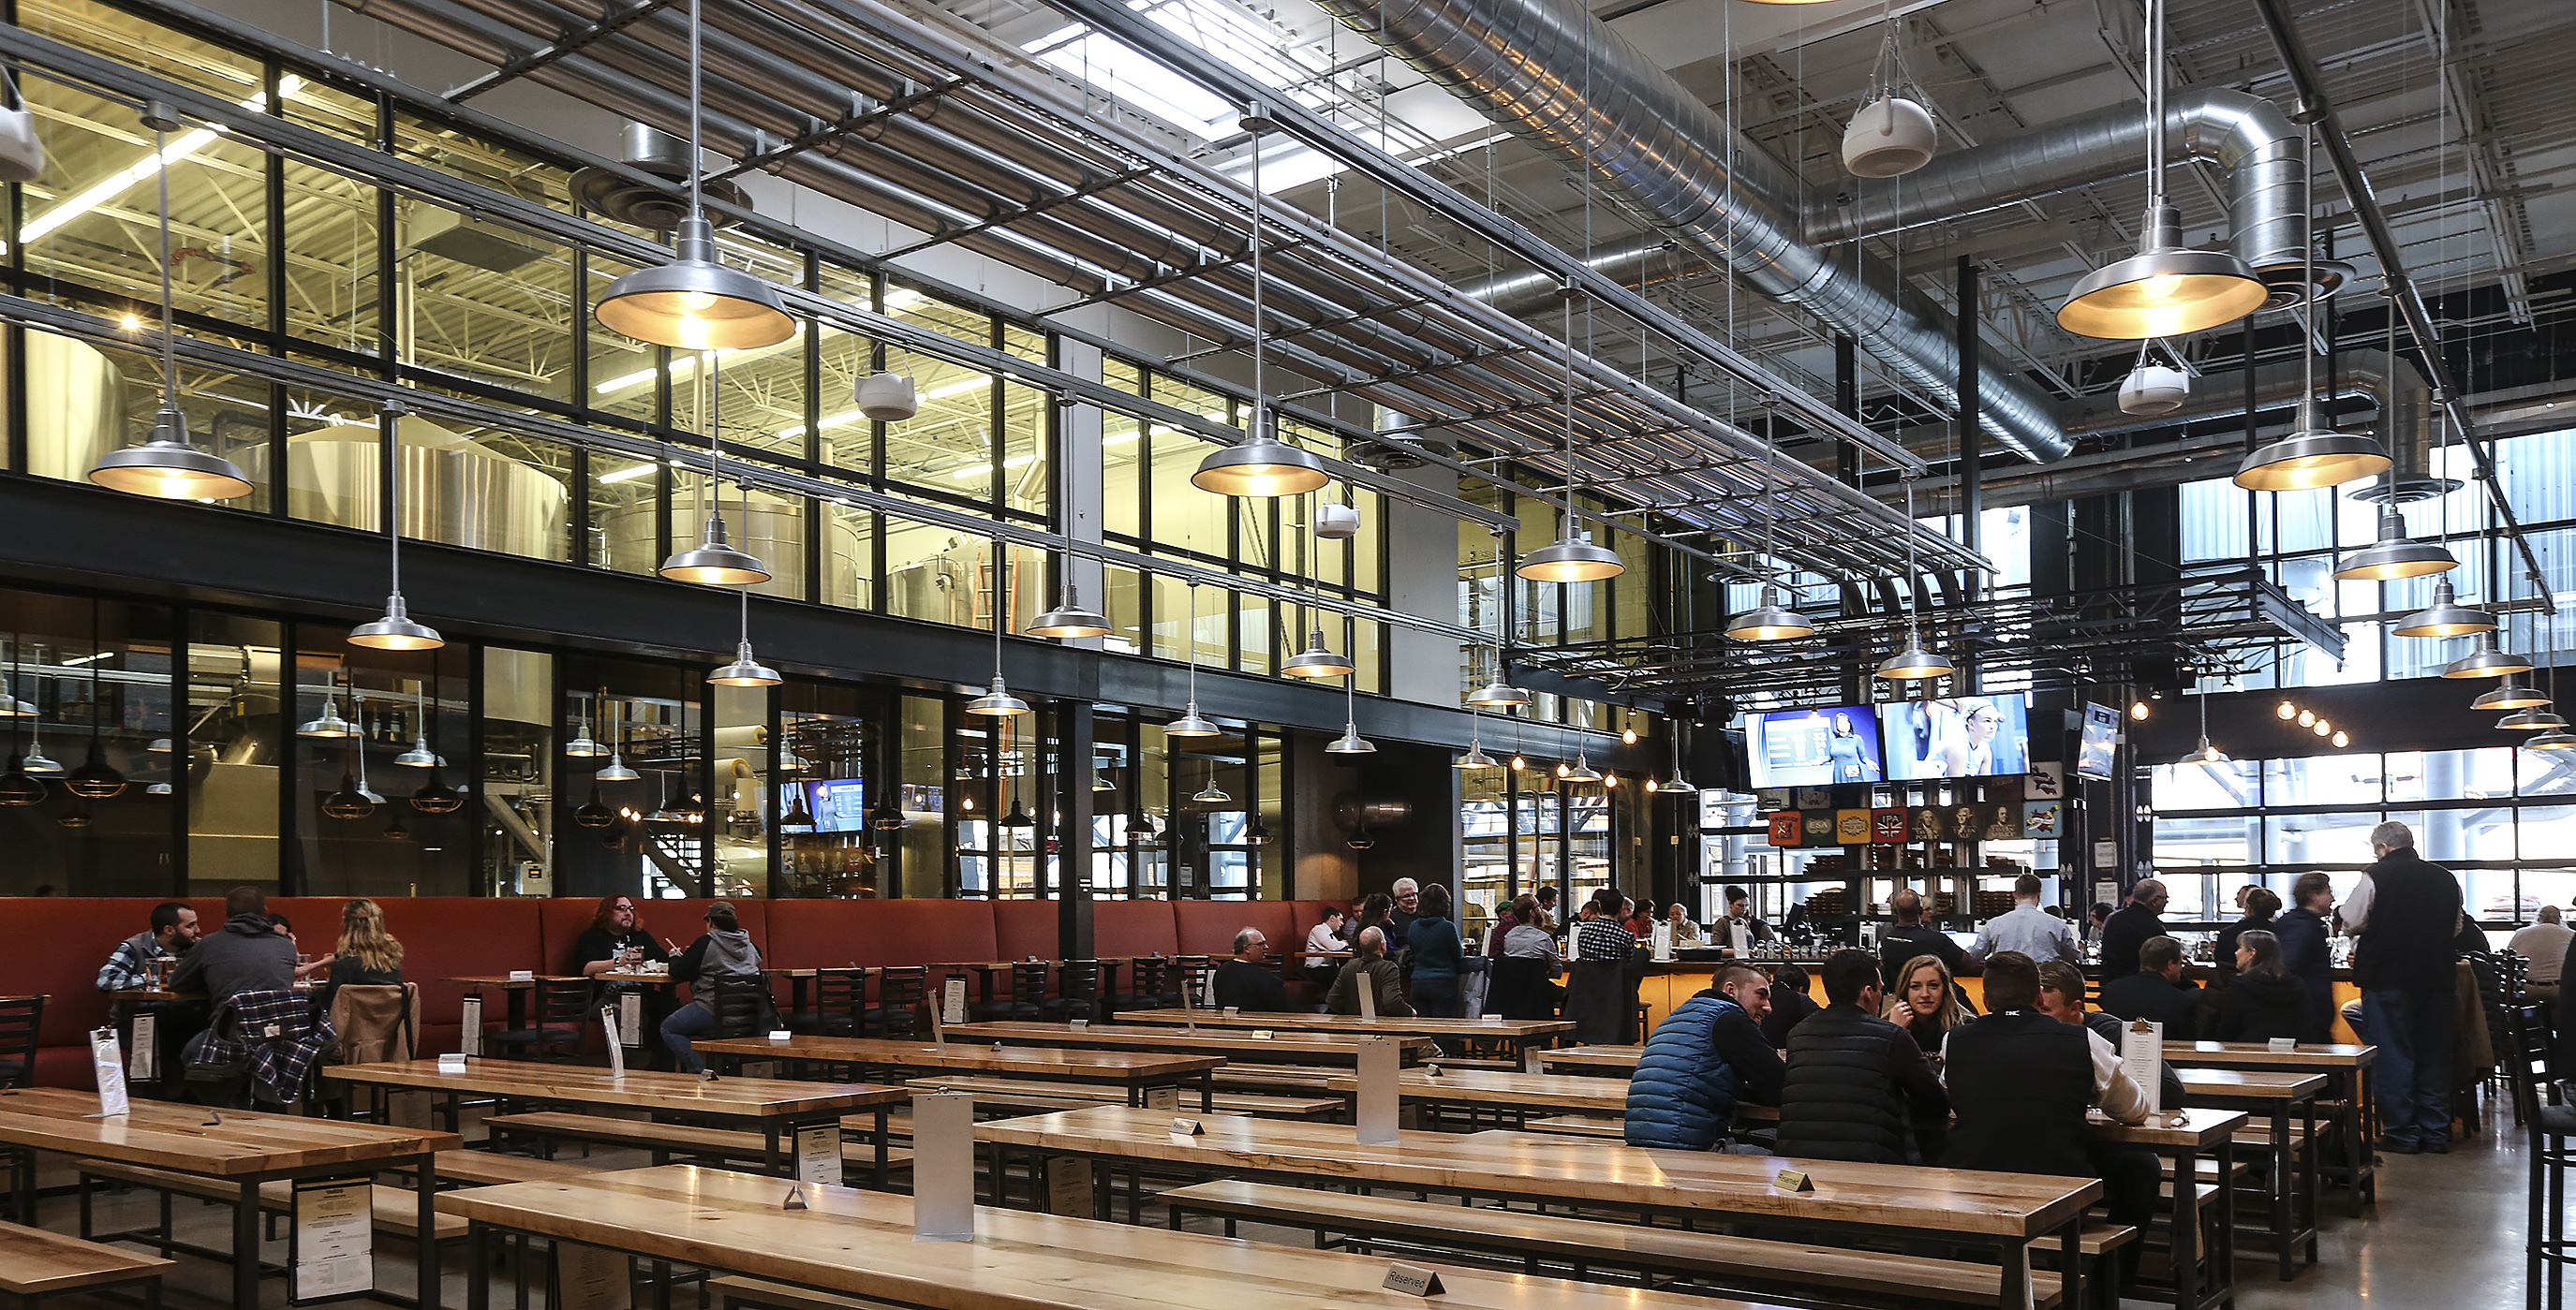 The Taproom at the new Yards Brewing Co. can seat 280-plus diners and offer clear views of the production floor.